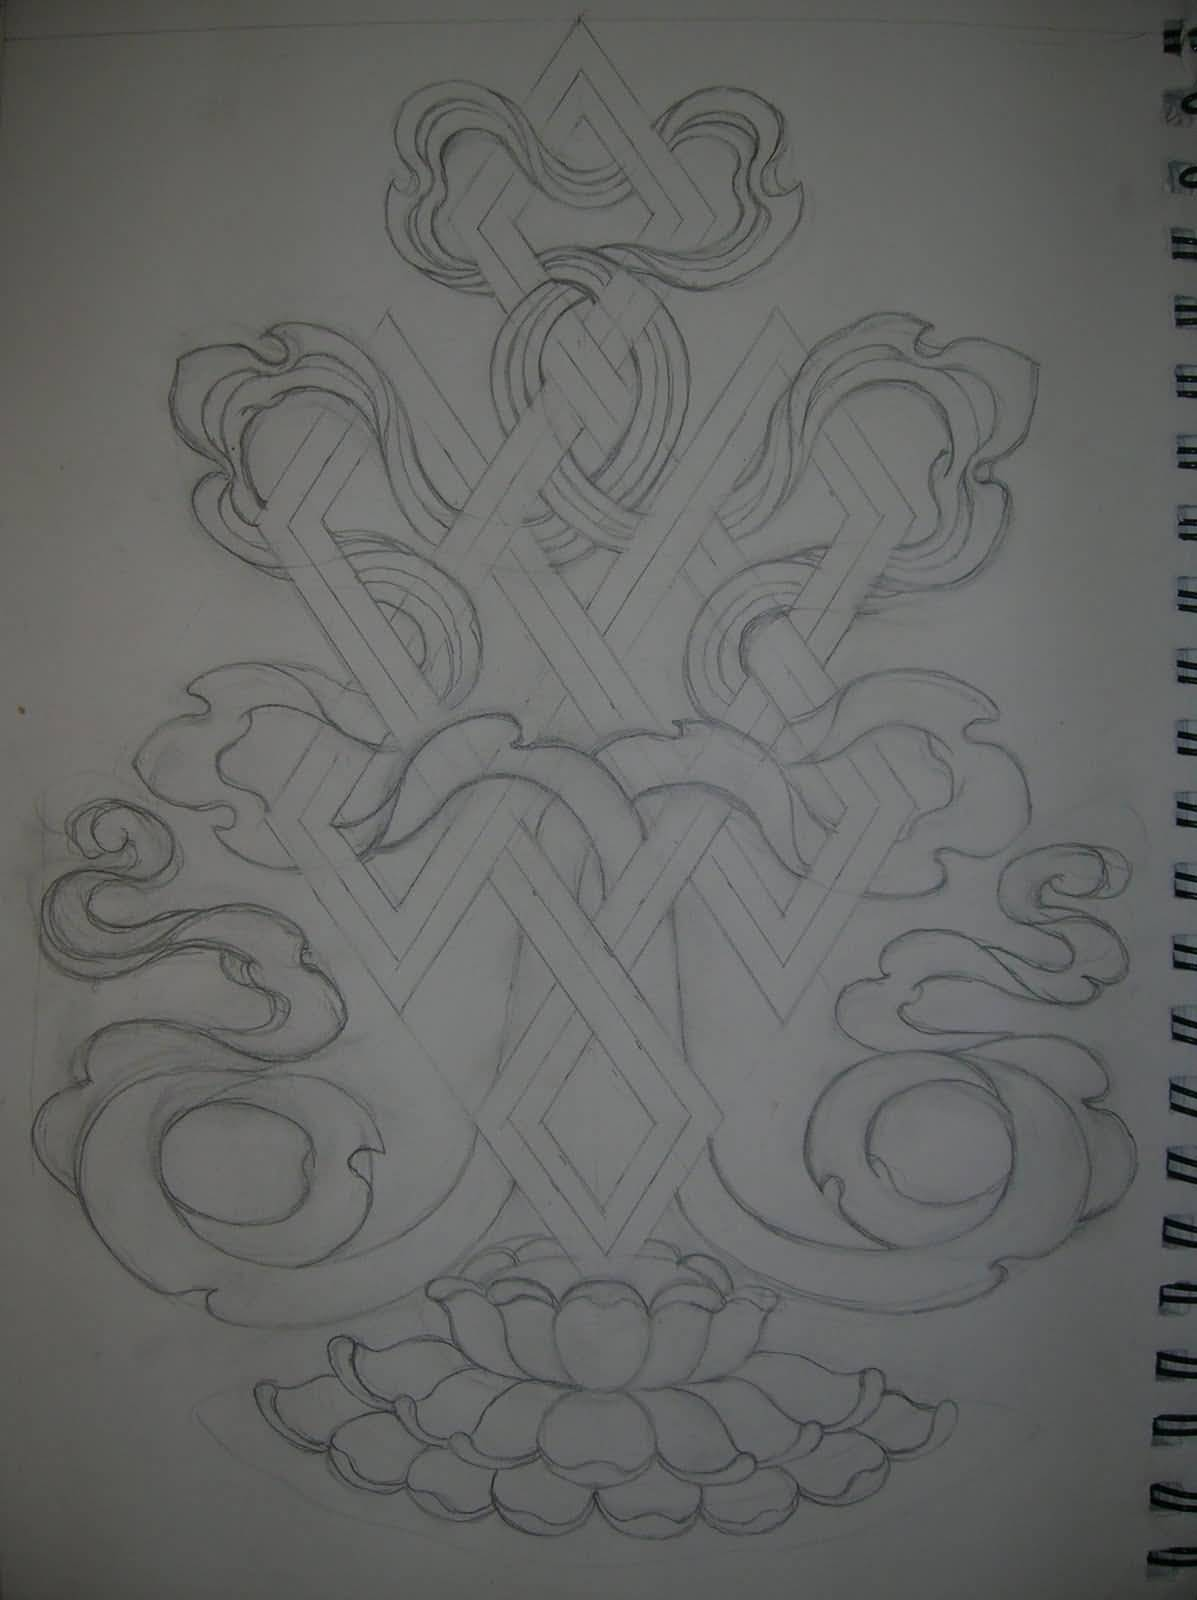 Pencil Work Nice Endless Knot Tattoo Design With Flower